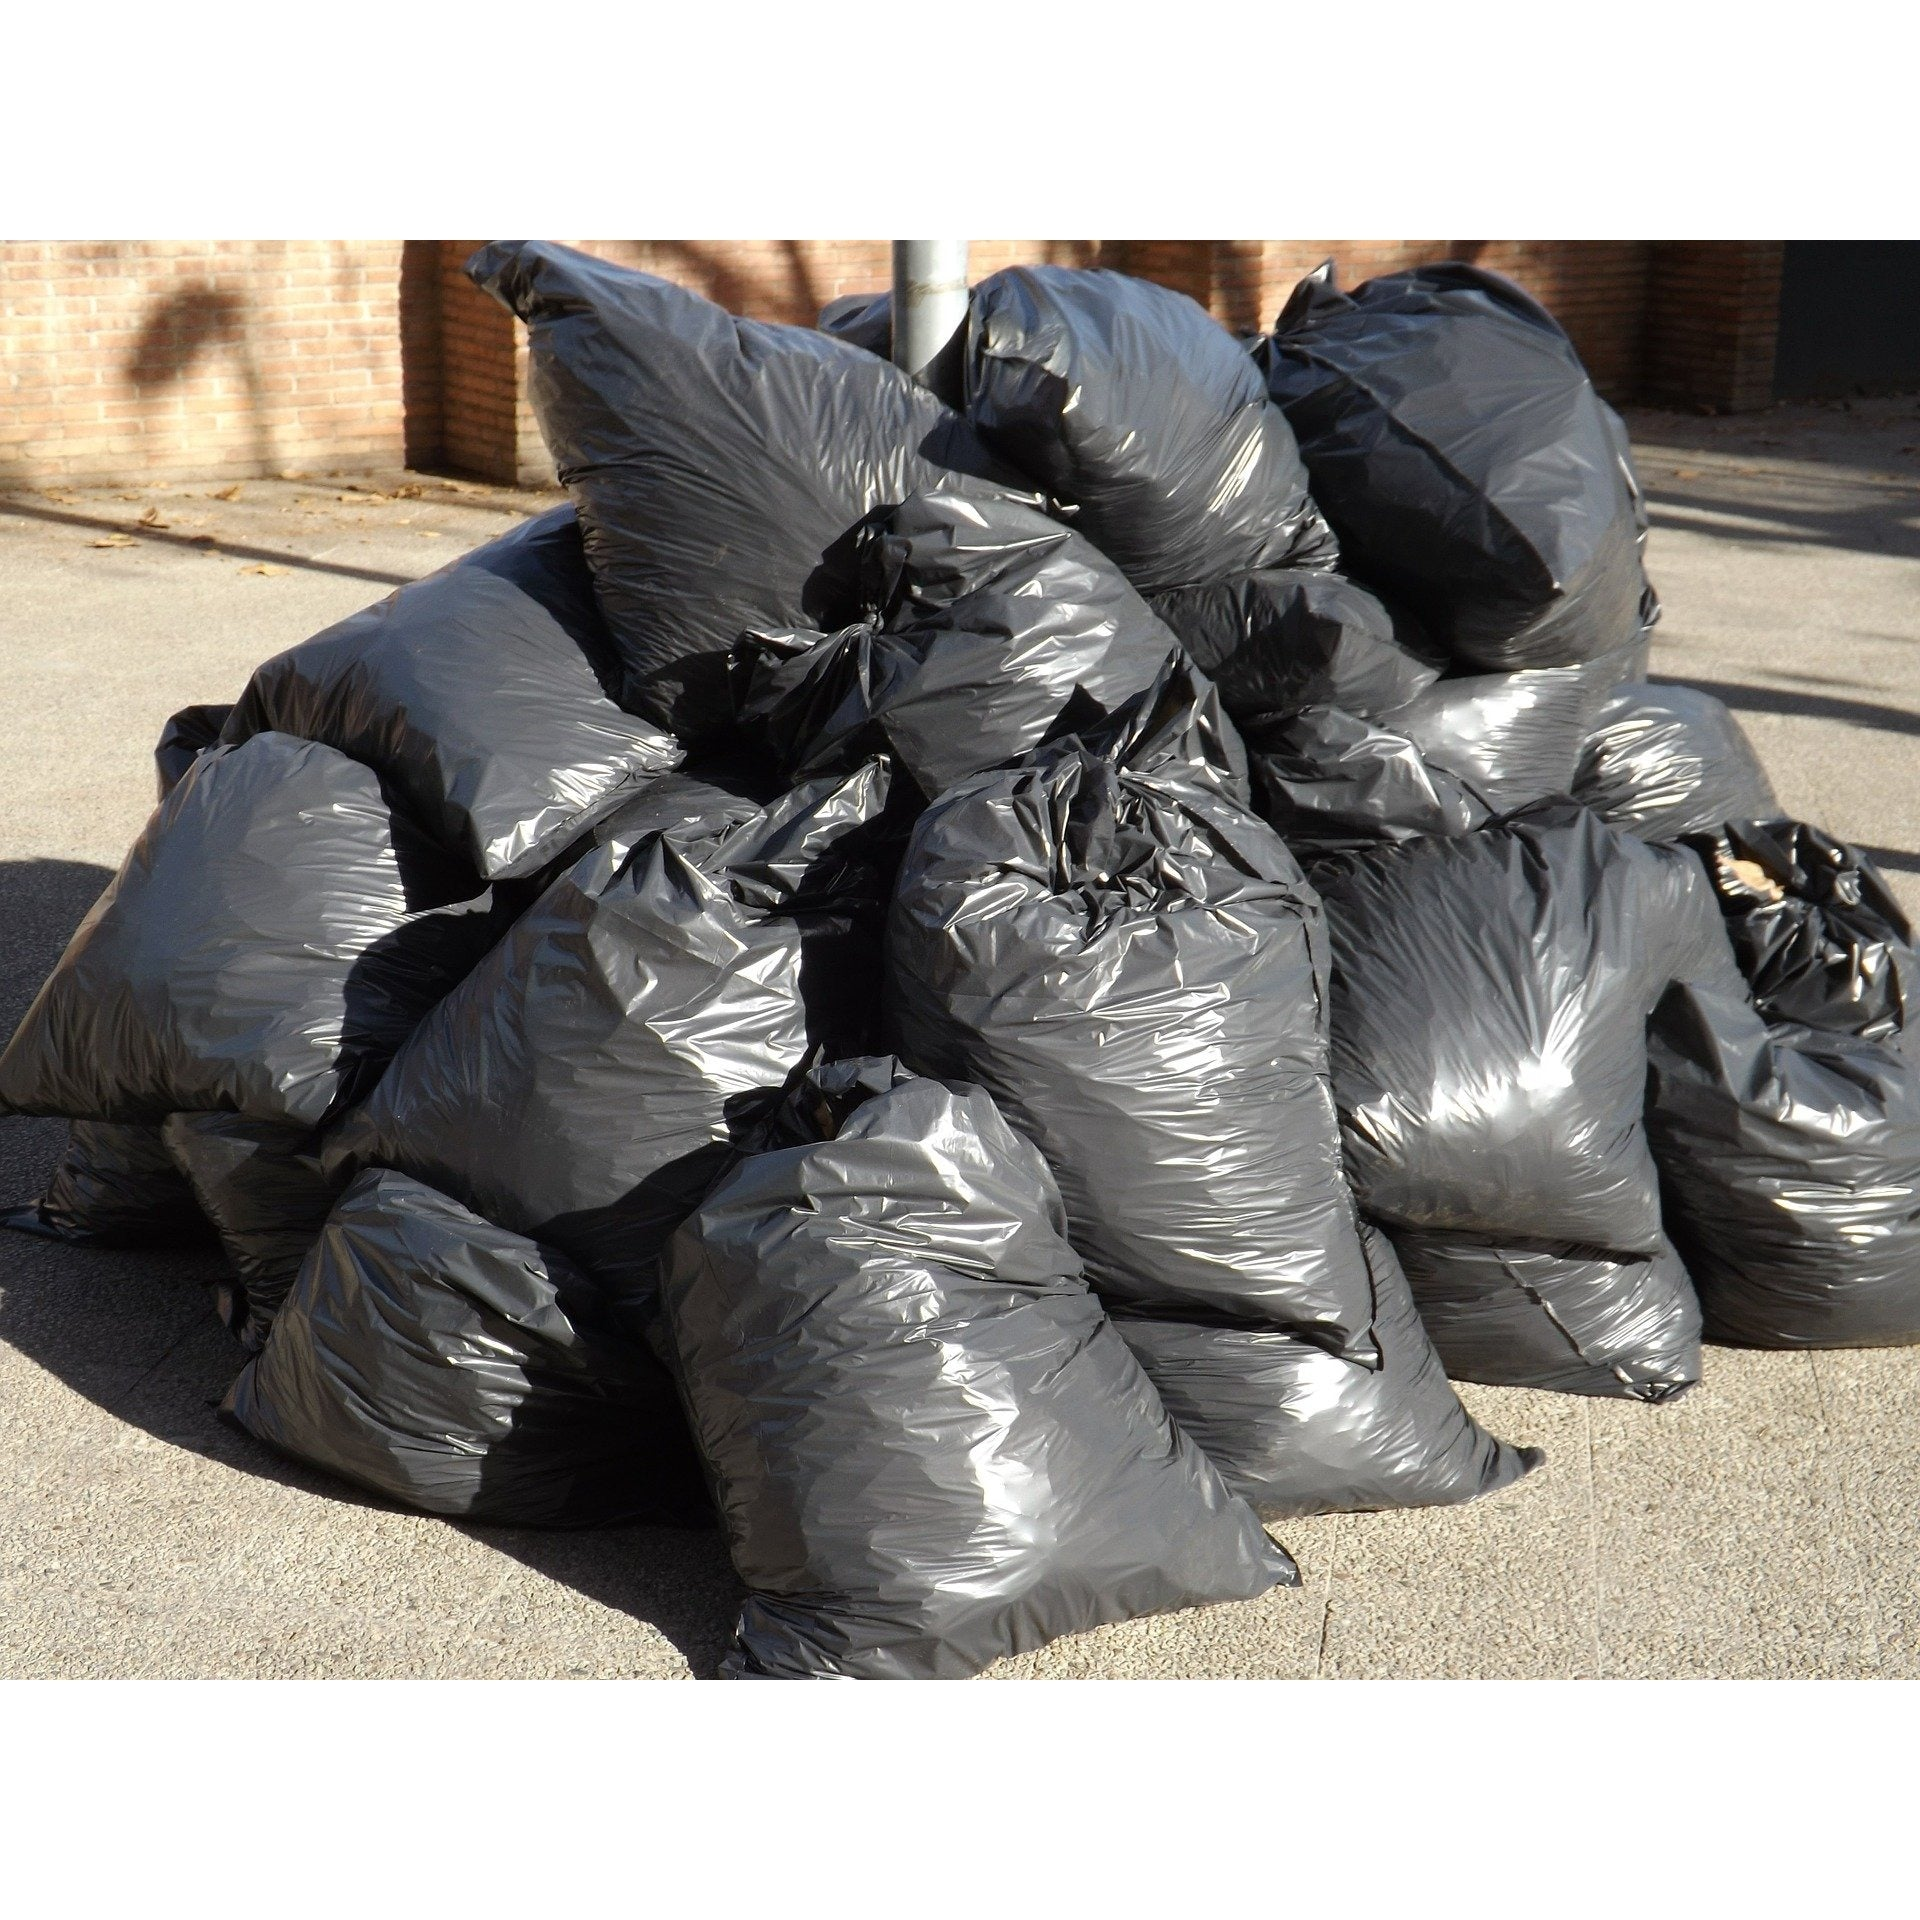 30 Gallon Garbage Bags - Black